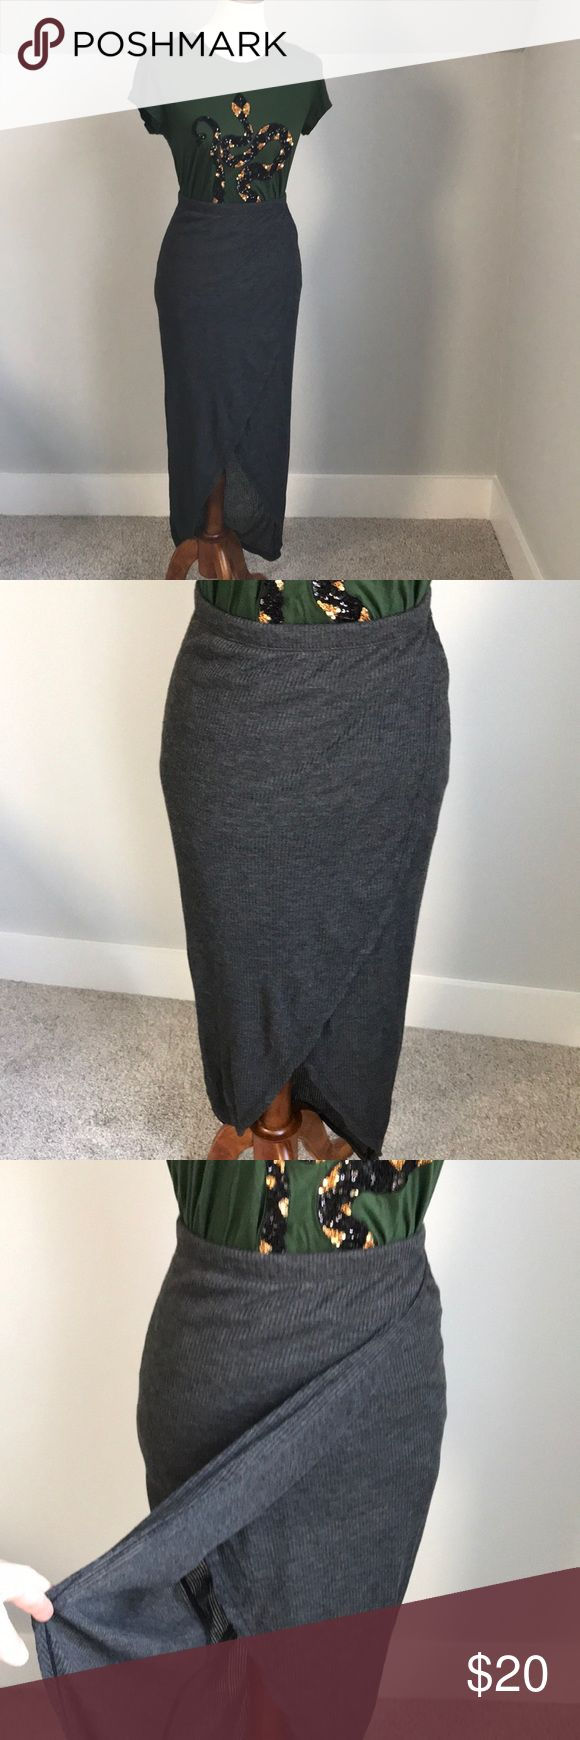 Tulip ribbed cotton skirt Perfect for the fall-winter transition.  Kind of a grunge look to it! Rue 21 Skirts Asymmetrical